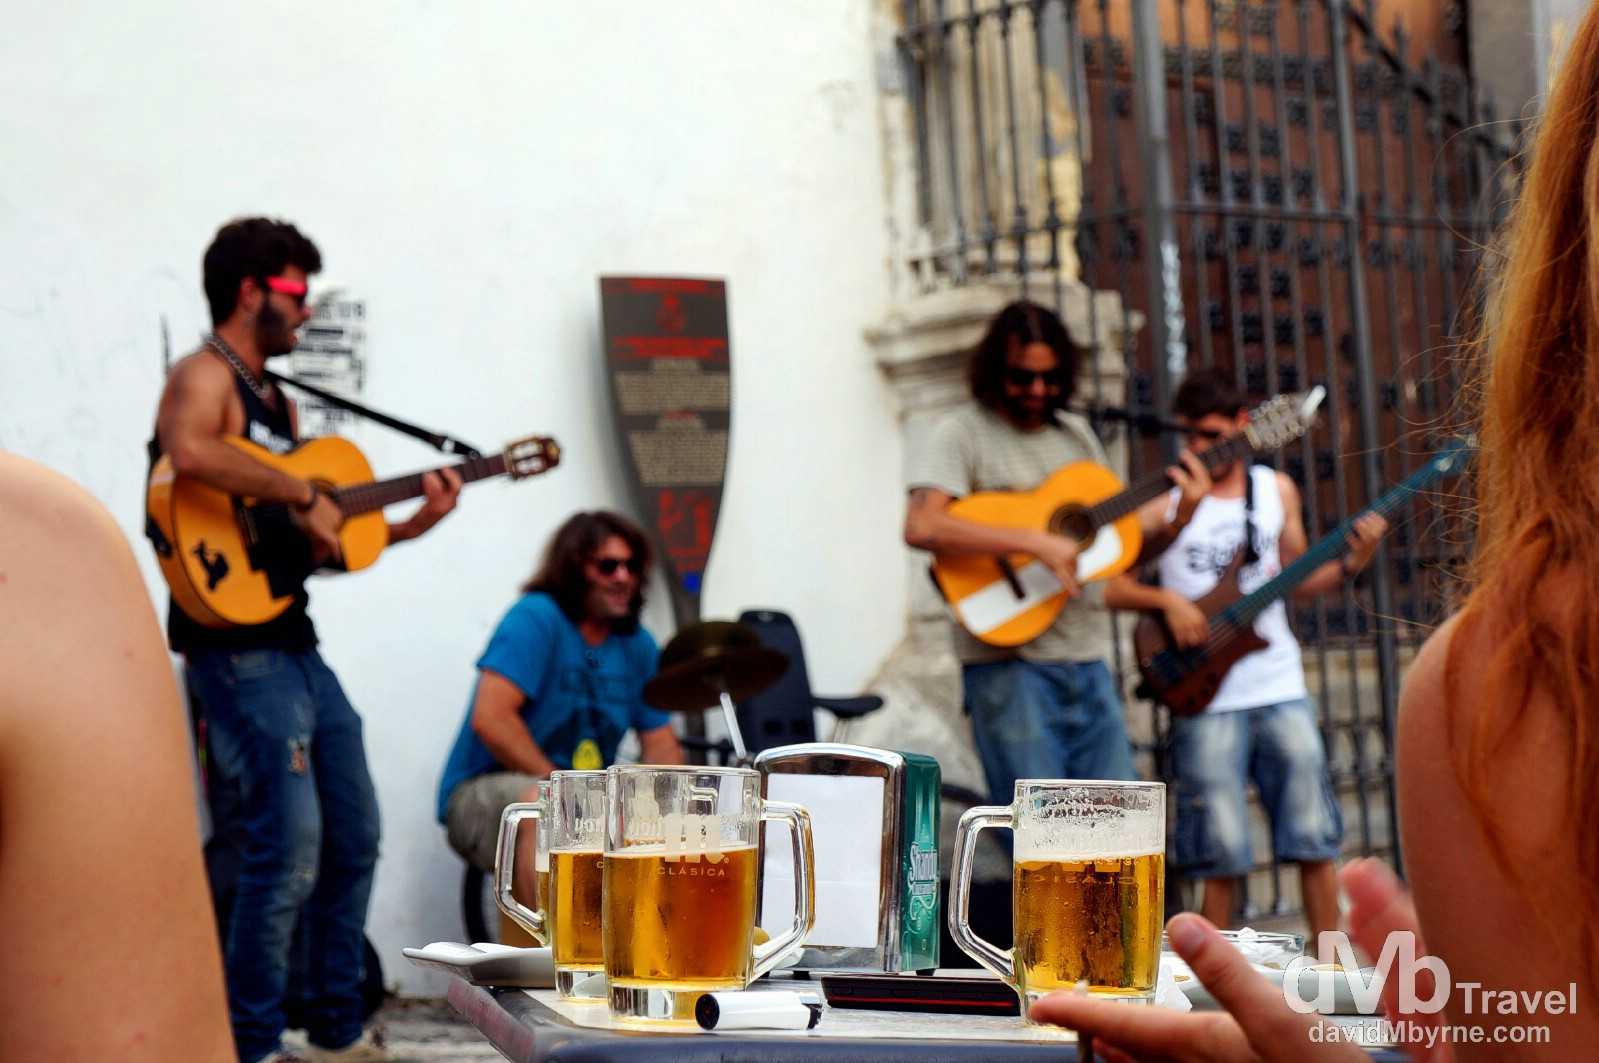 Enjoying a beer (& the buskers) in Placeta de San Gregorio in Granada, Andalucia, Spain. June 11th, 2014.